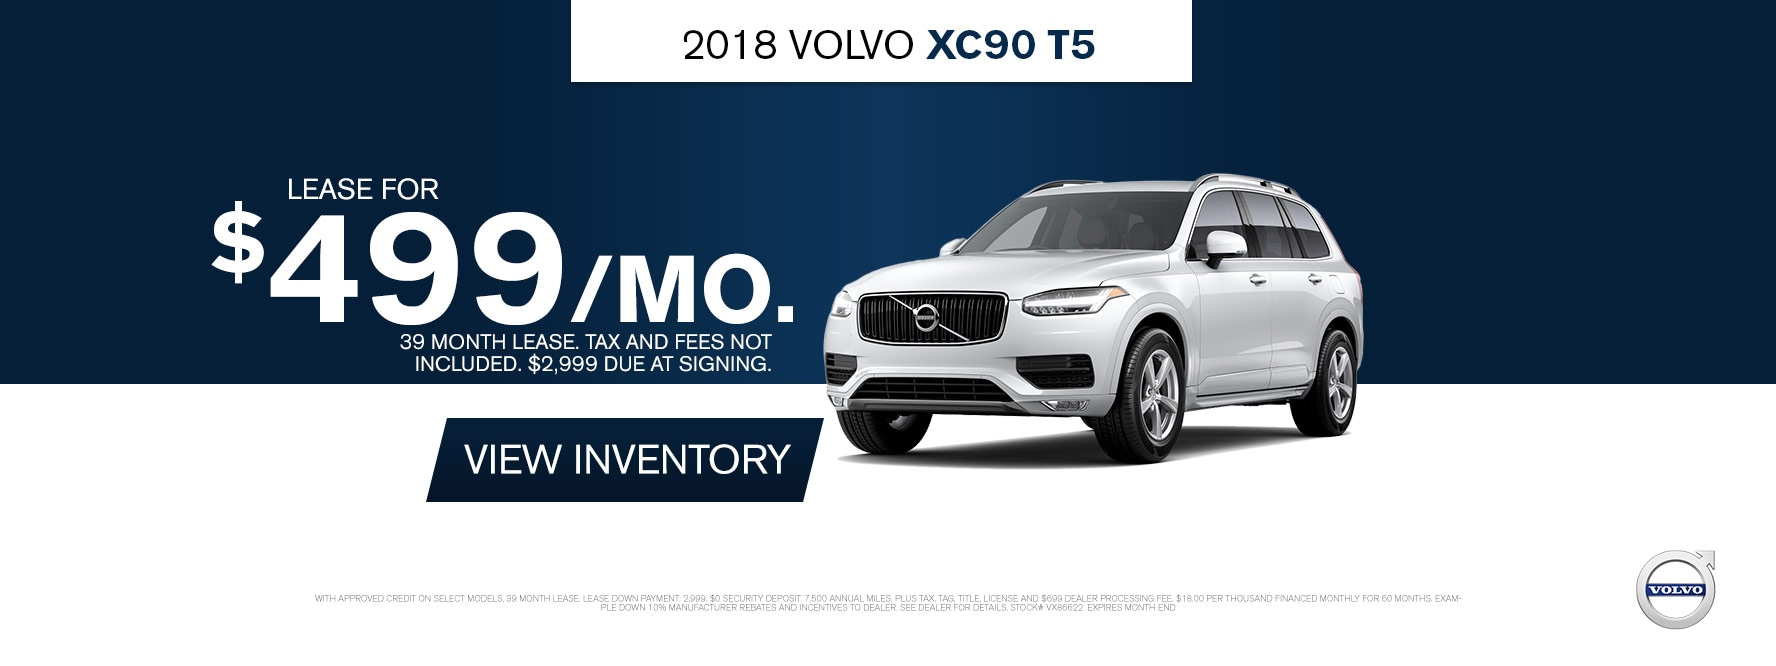 Marvelous Wallace Volvo In Stuart, FL | New And Pre Owned Volvo Cars Serving ...